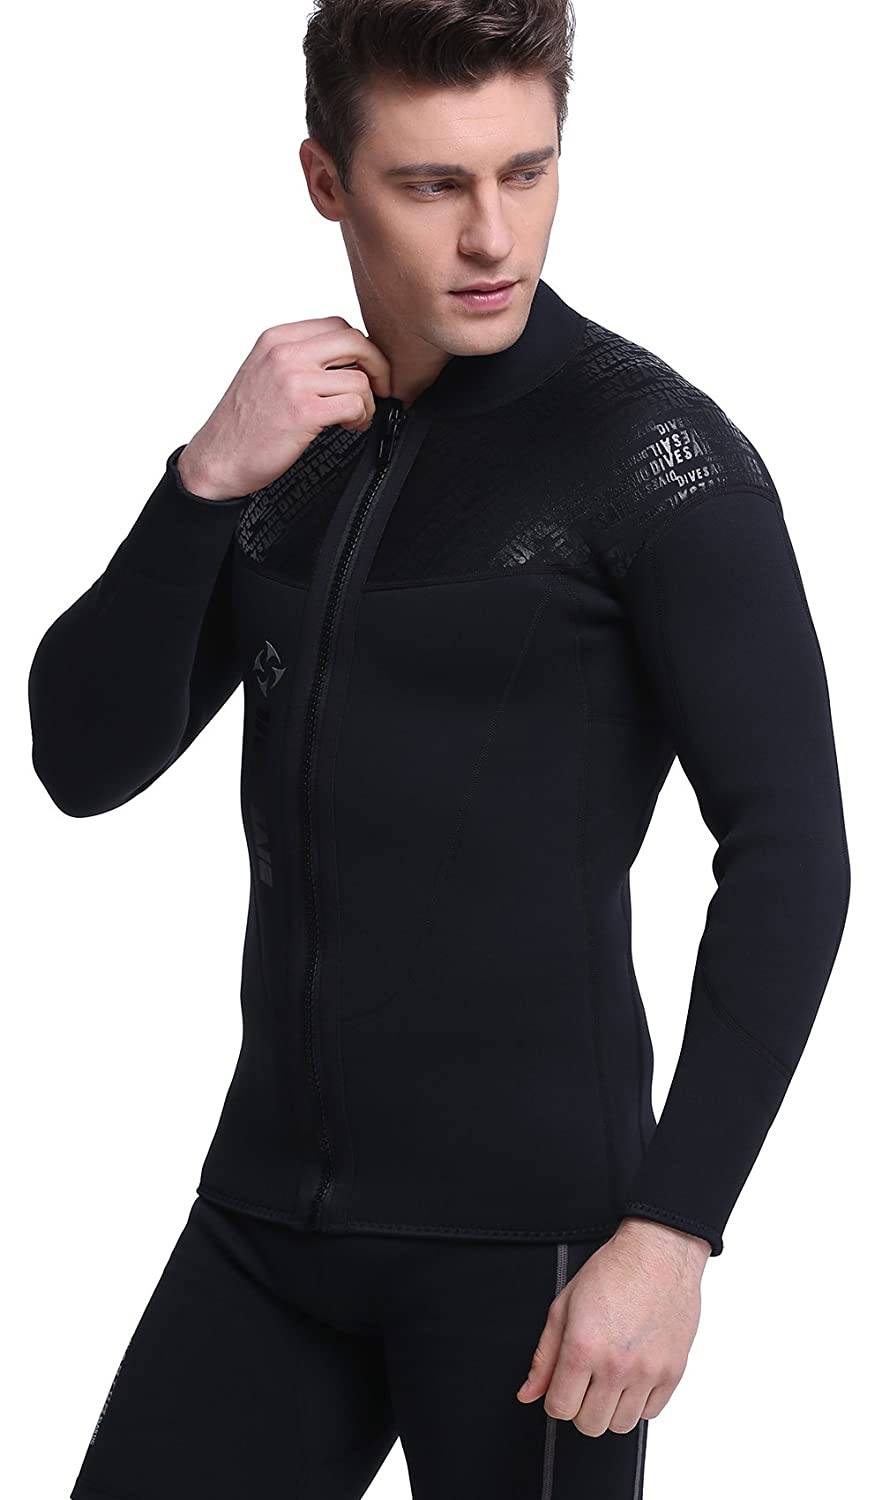 755533873b1f5 Dive & Sail Wetsuit Top 3mm Neoprene Wetsuit Men Long Sleeve Wetsuit for Surf  Swimming Water Sports: Amazon.ca: Sports & Outdoors